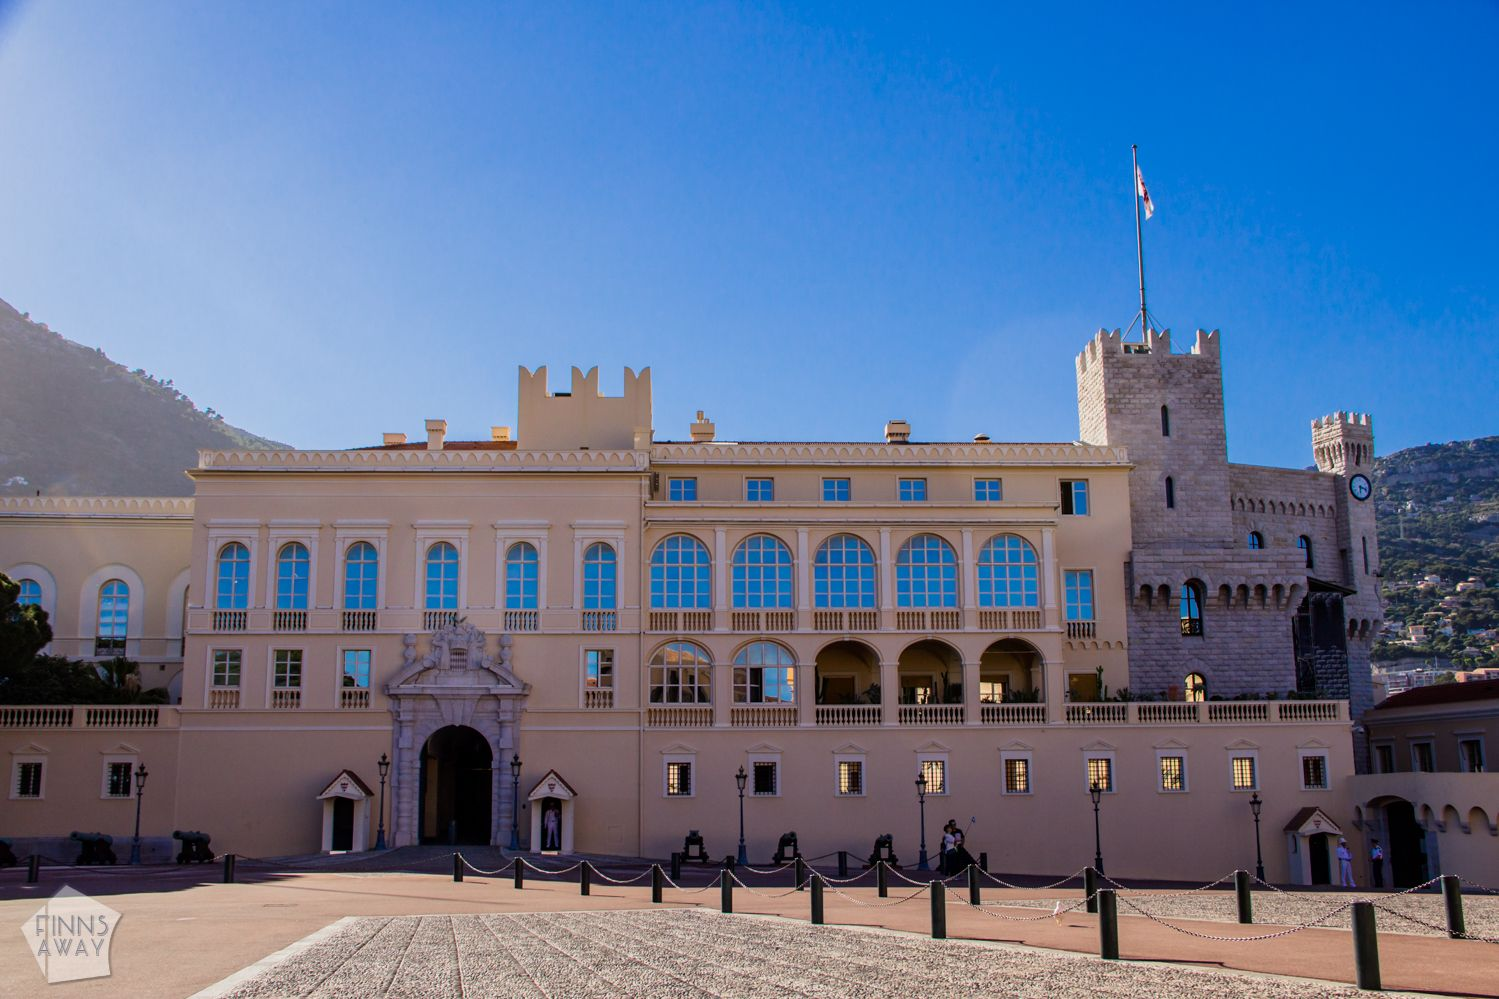 Palace of Monaco | Introducing the tiny, wealthy and luxurious Monaco in French Riviera. | FinnsAway Travel Blog